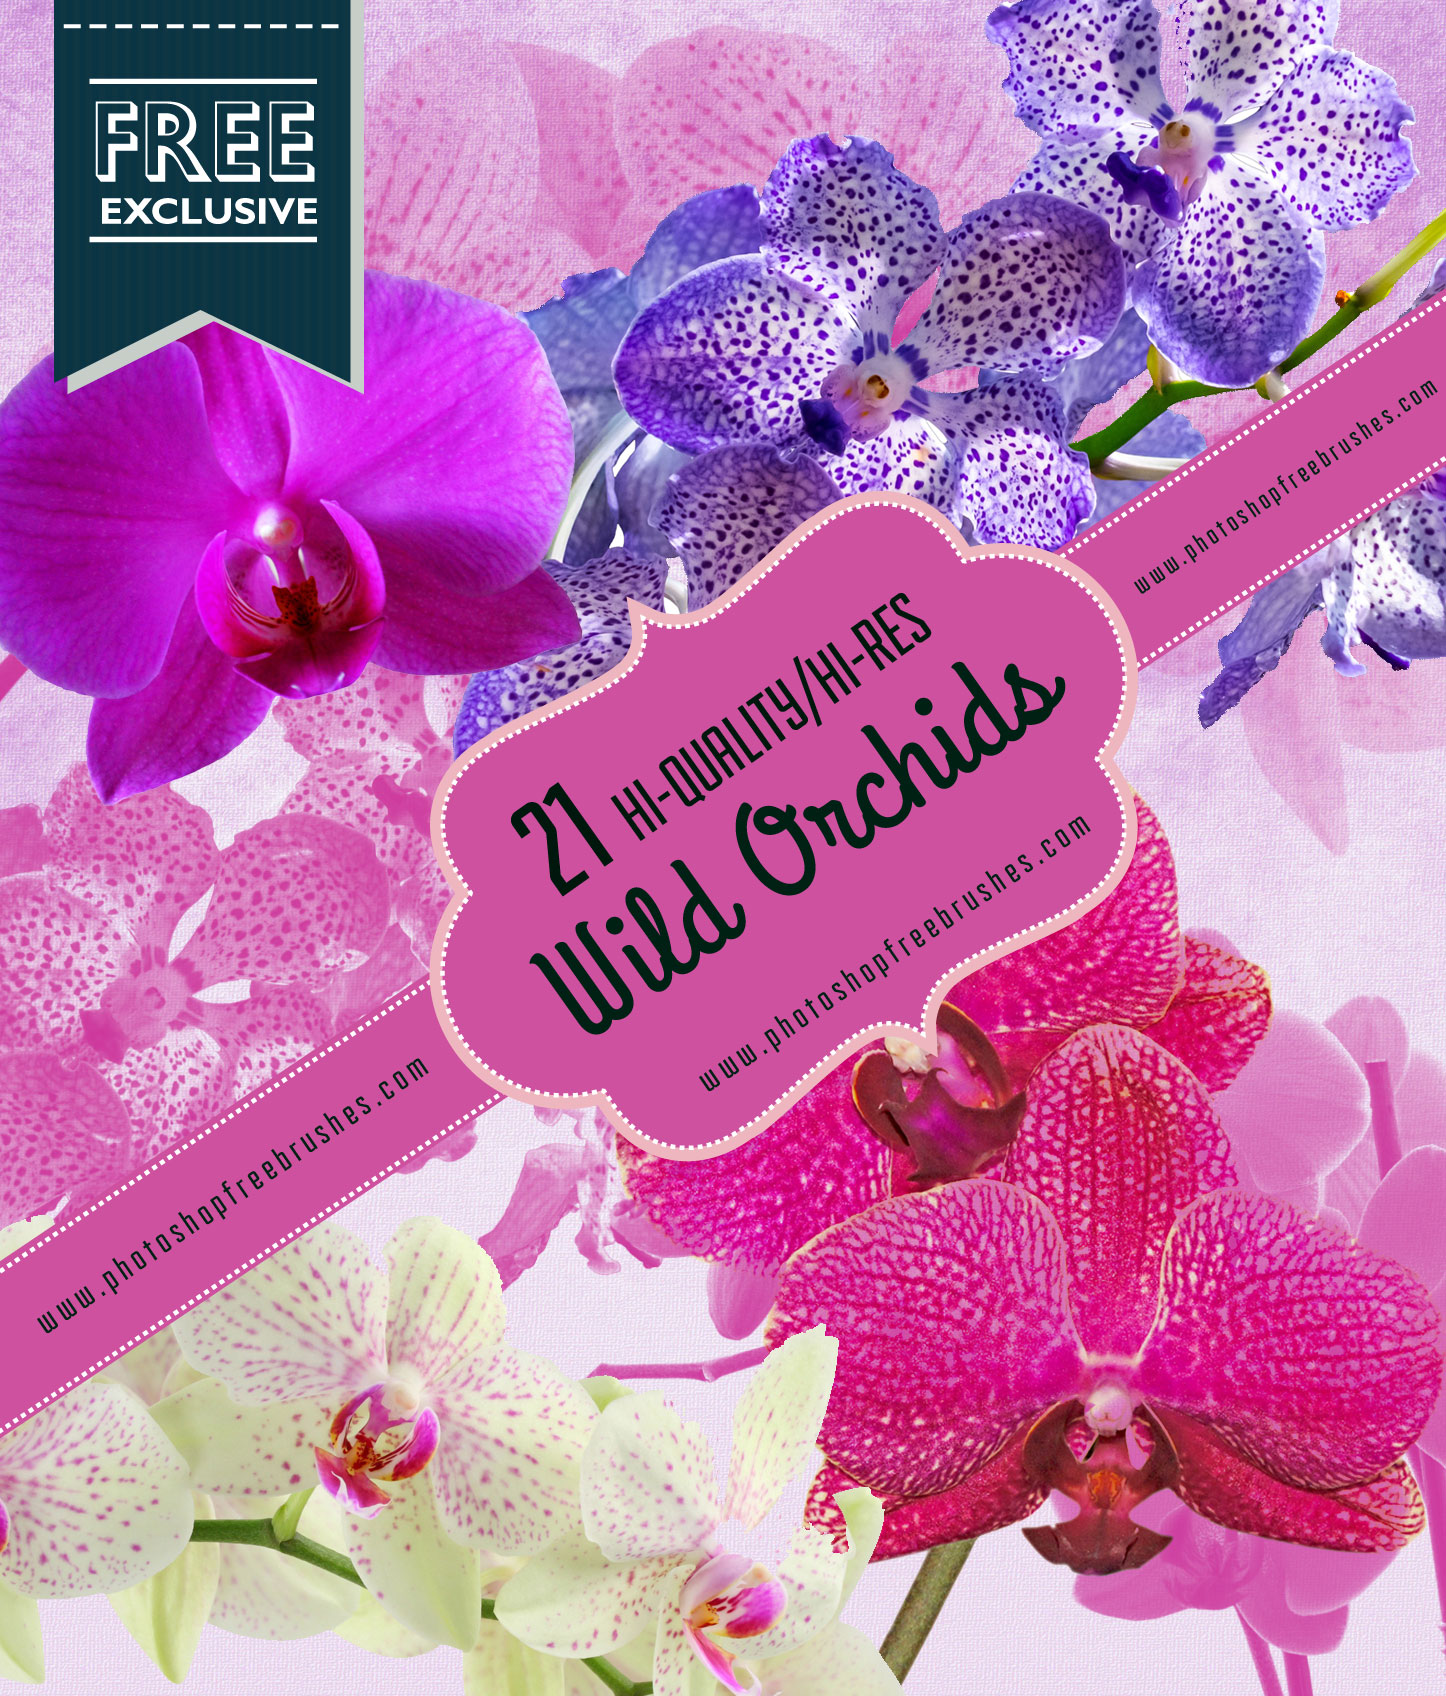 orchid-flower-brushes